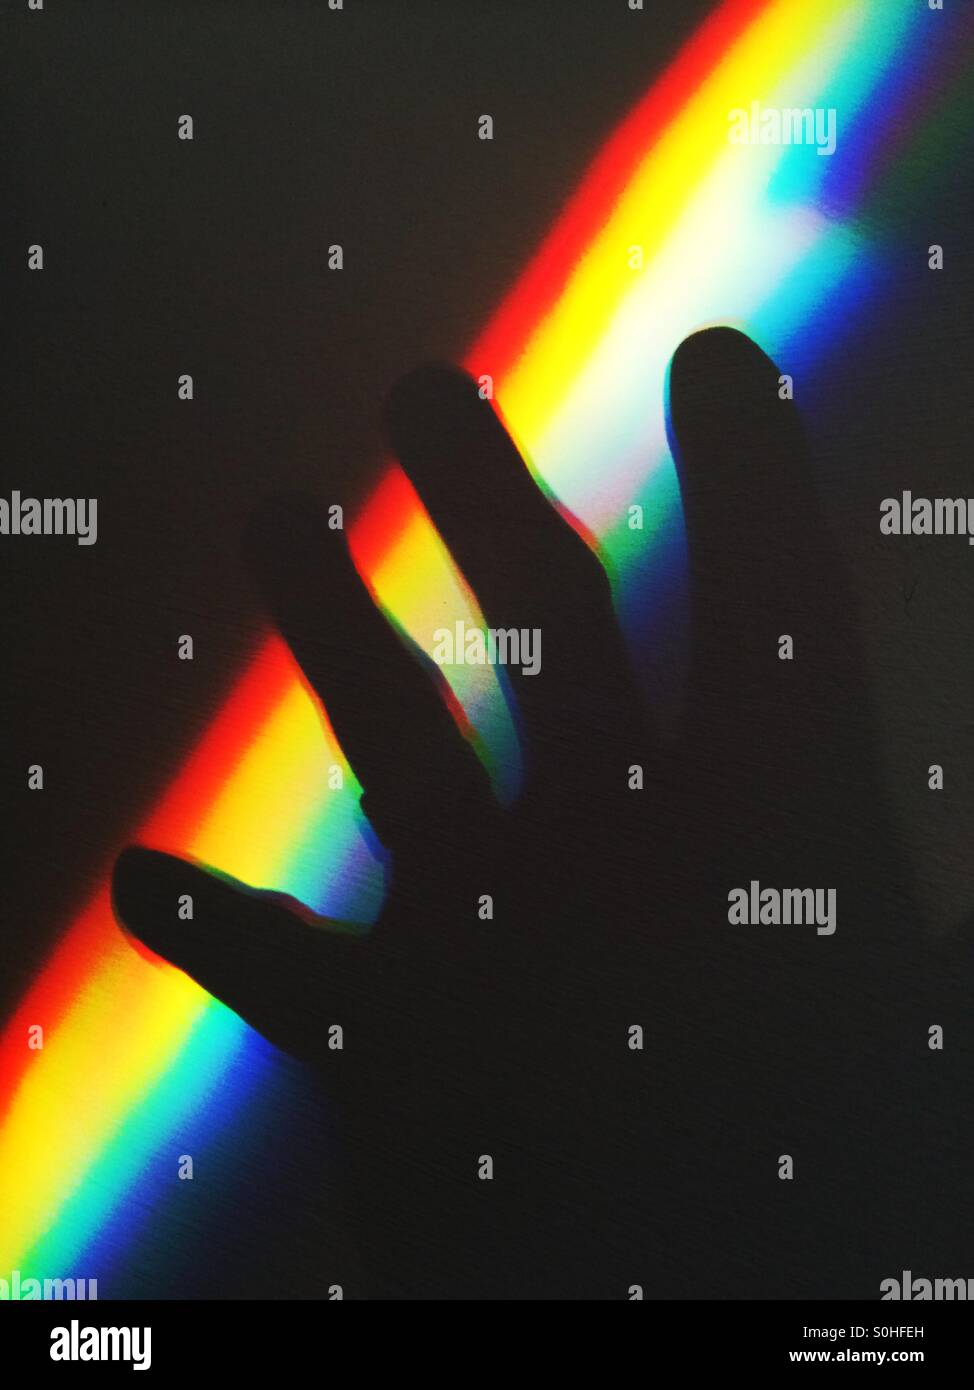 Spectrum and hand shadow - Stock Image